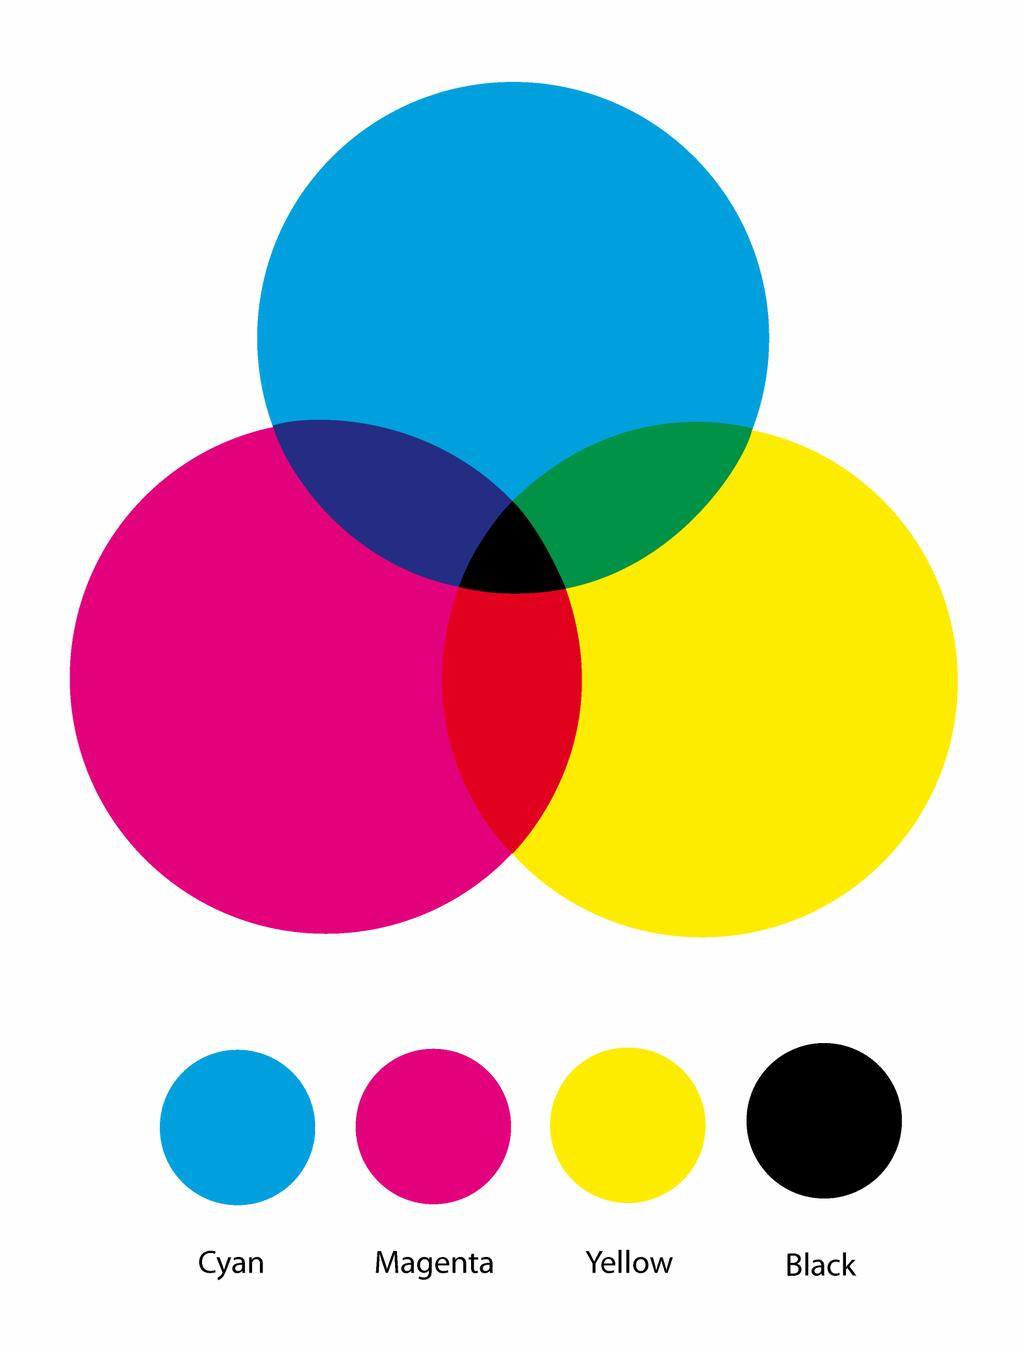 Two common colour spaces are RGB and CMYK.